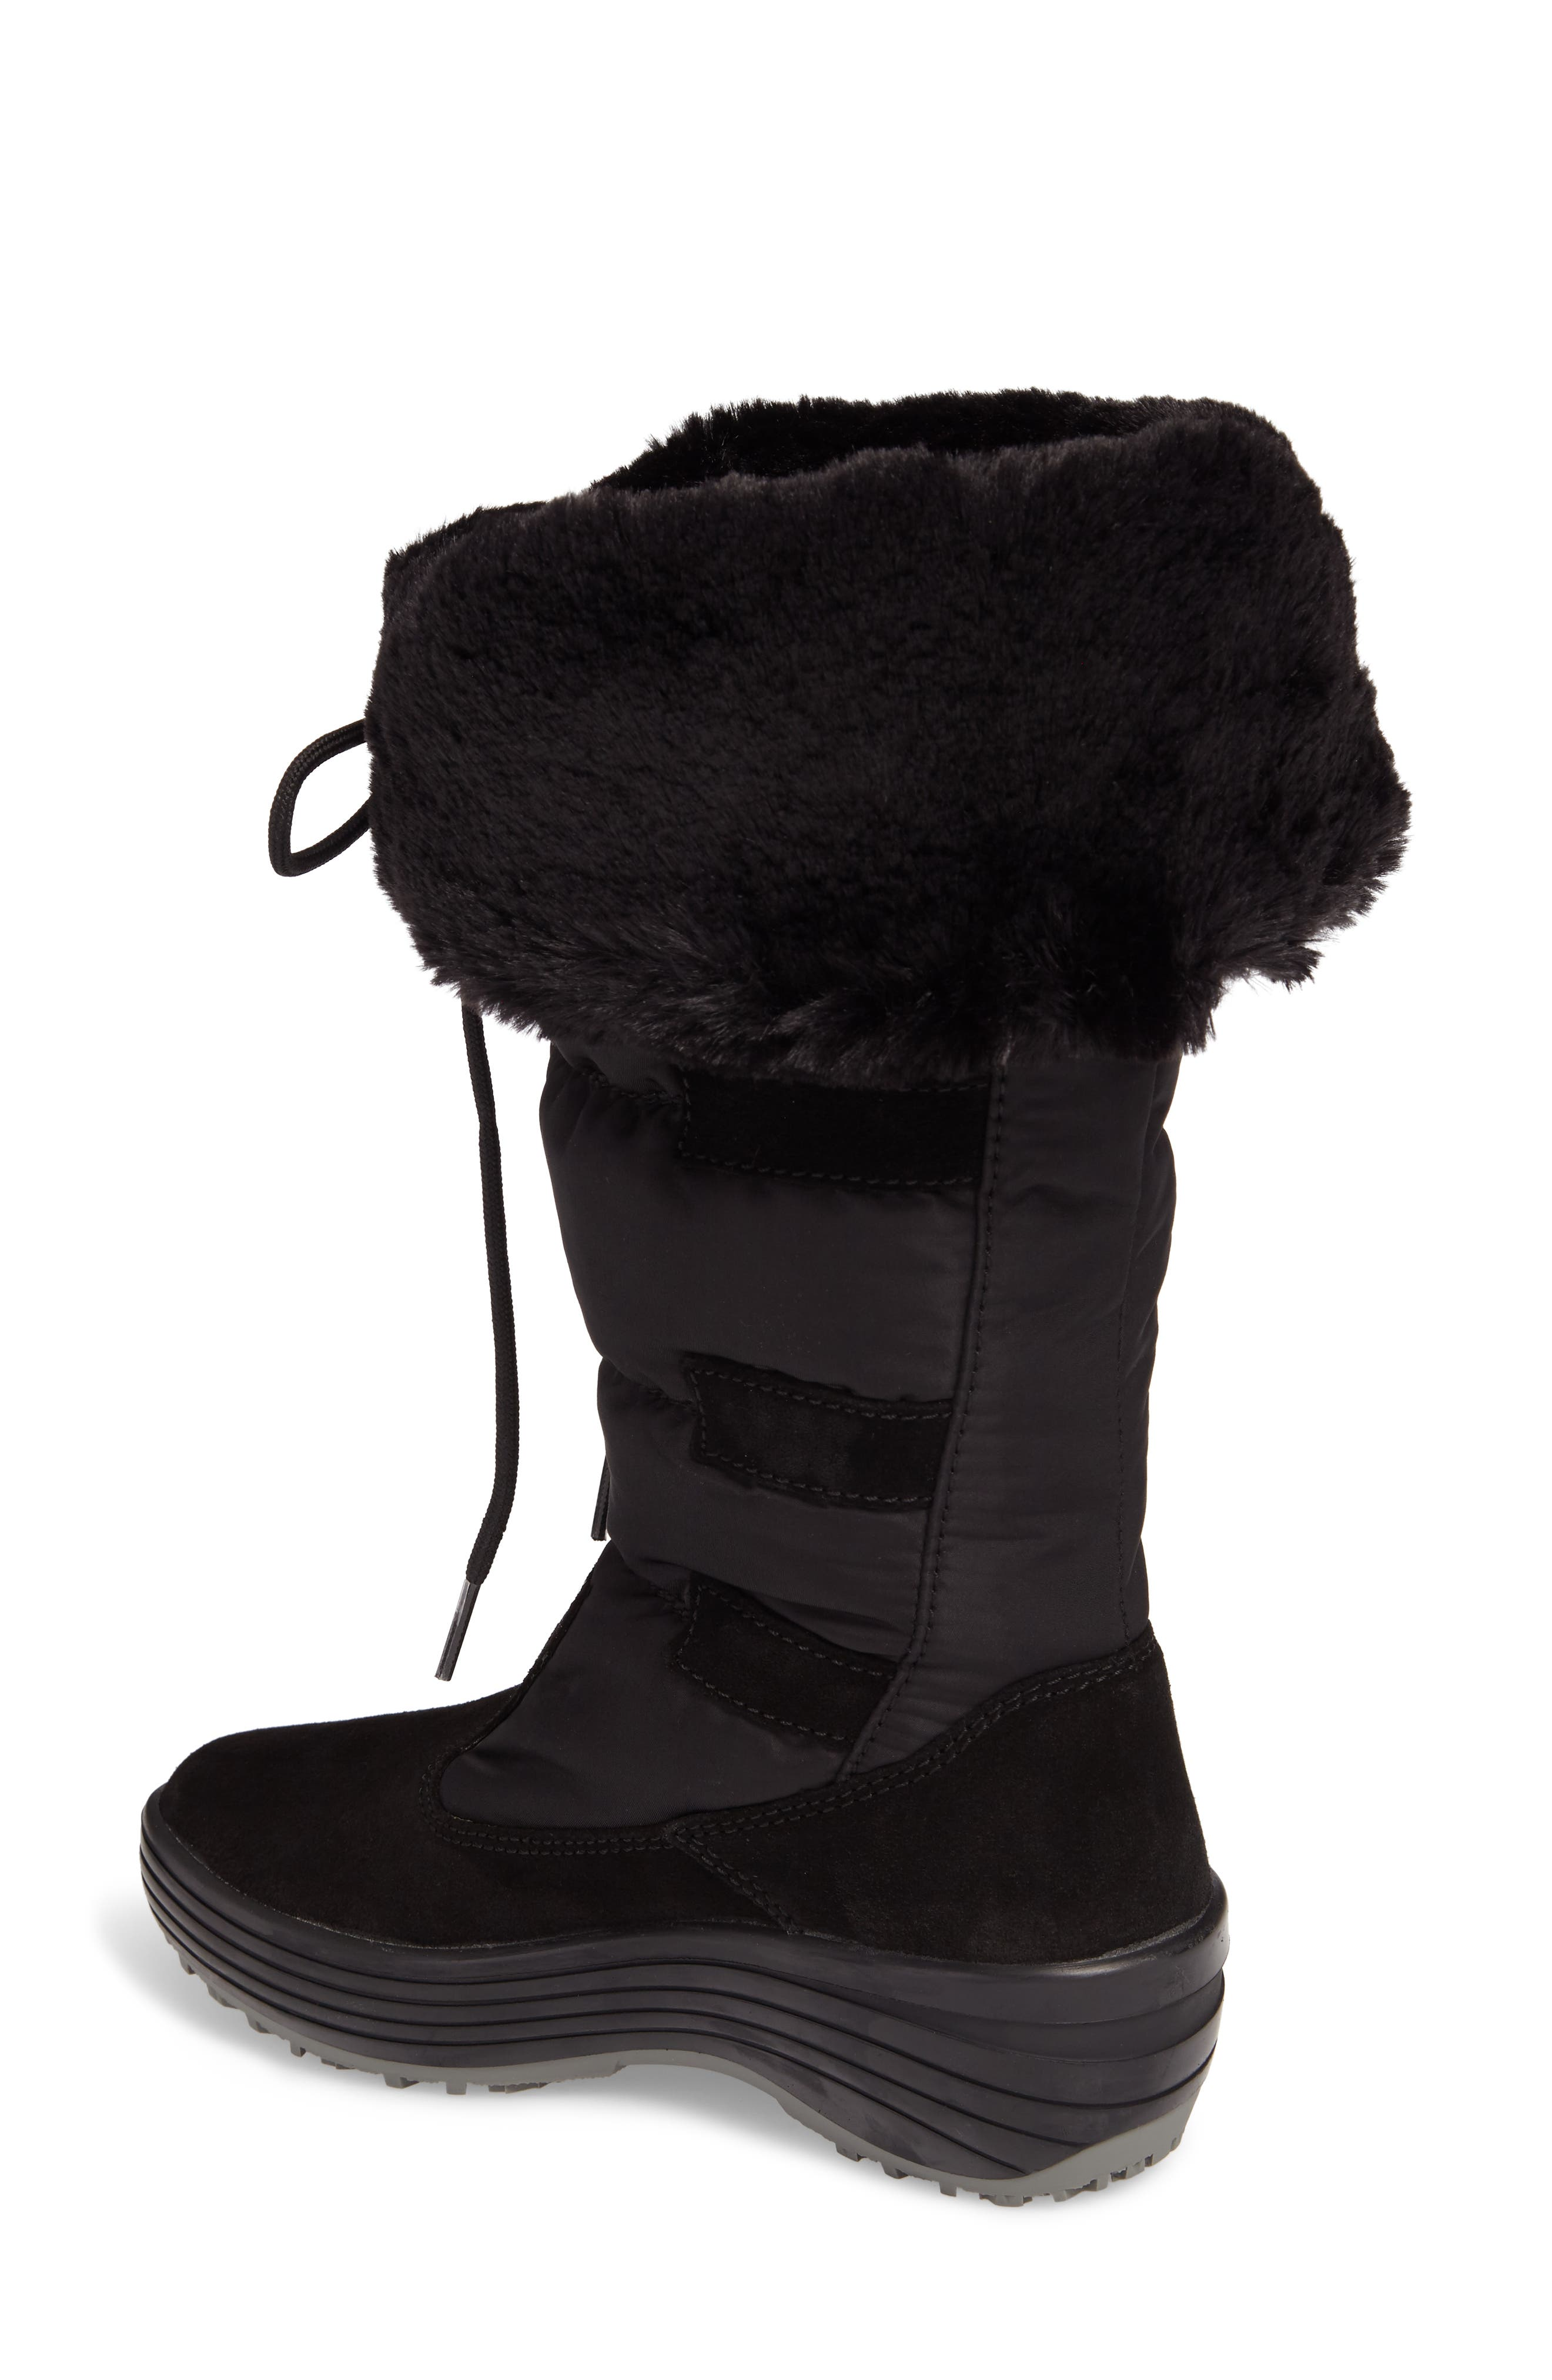 Mia Waterproof Boot with Faux Fur Trim,                             Alternate thumbnail 2, color,                             Black Suede